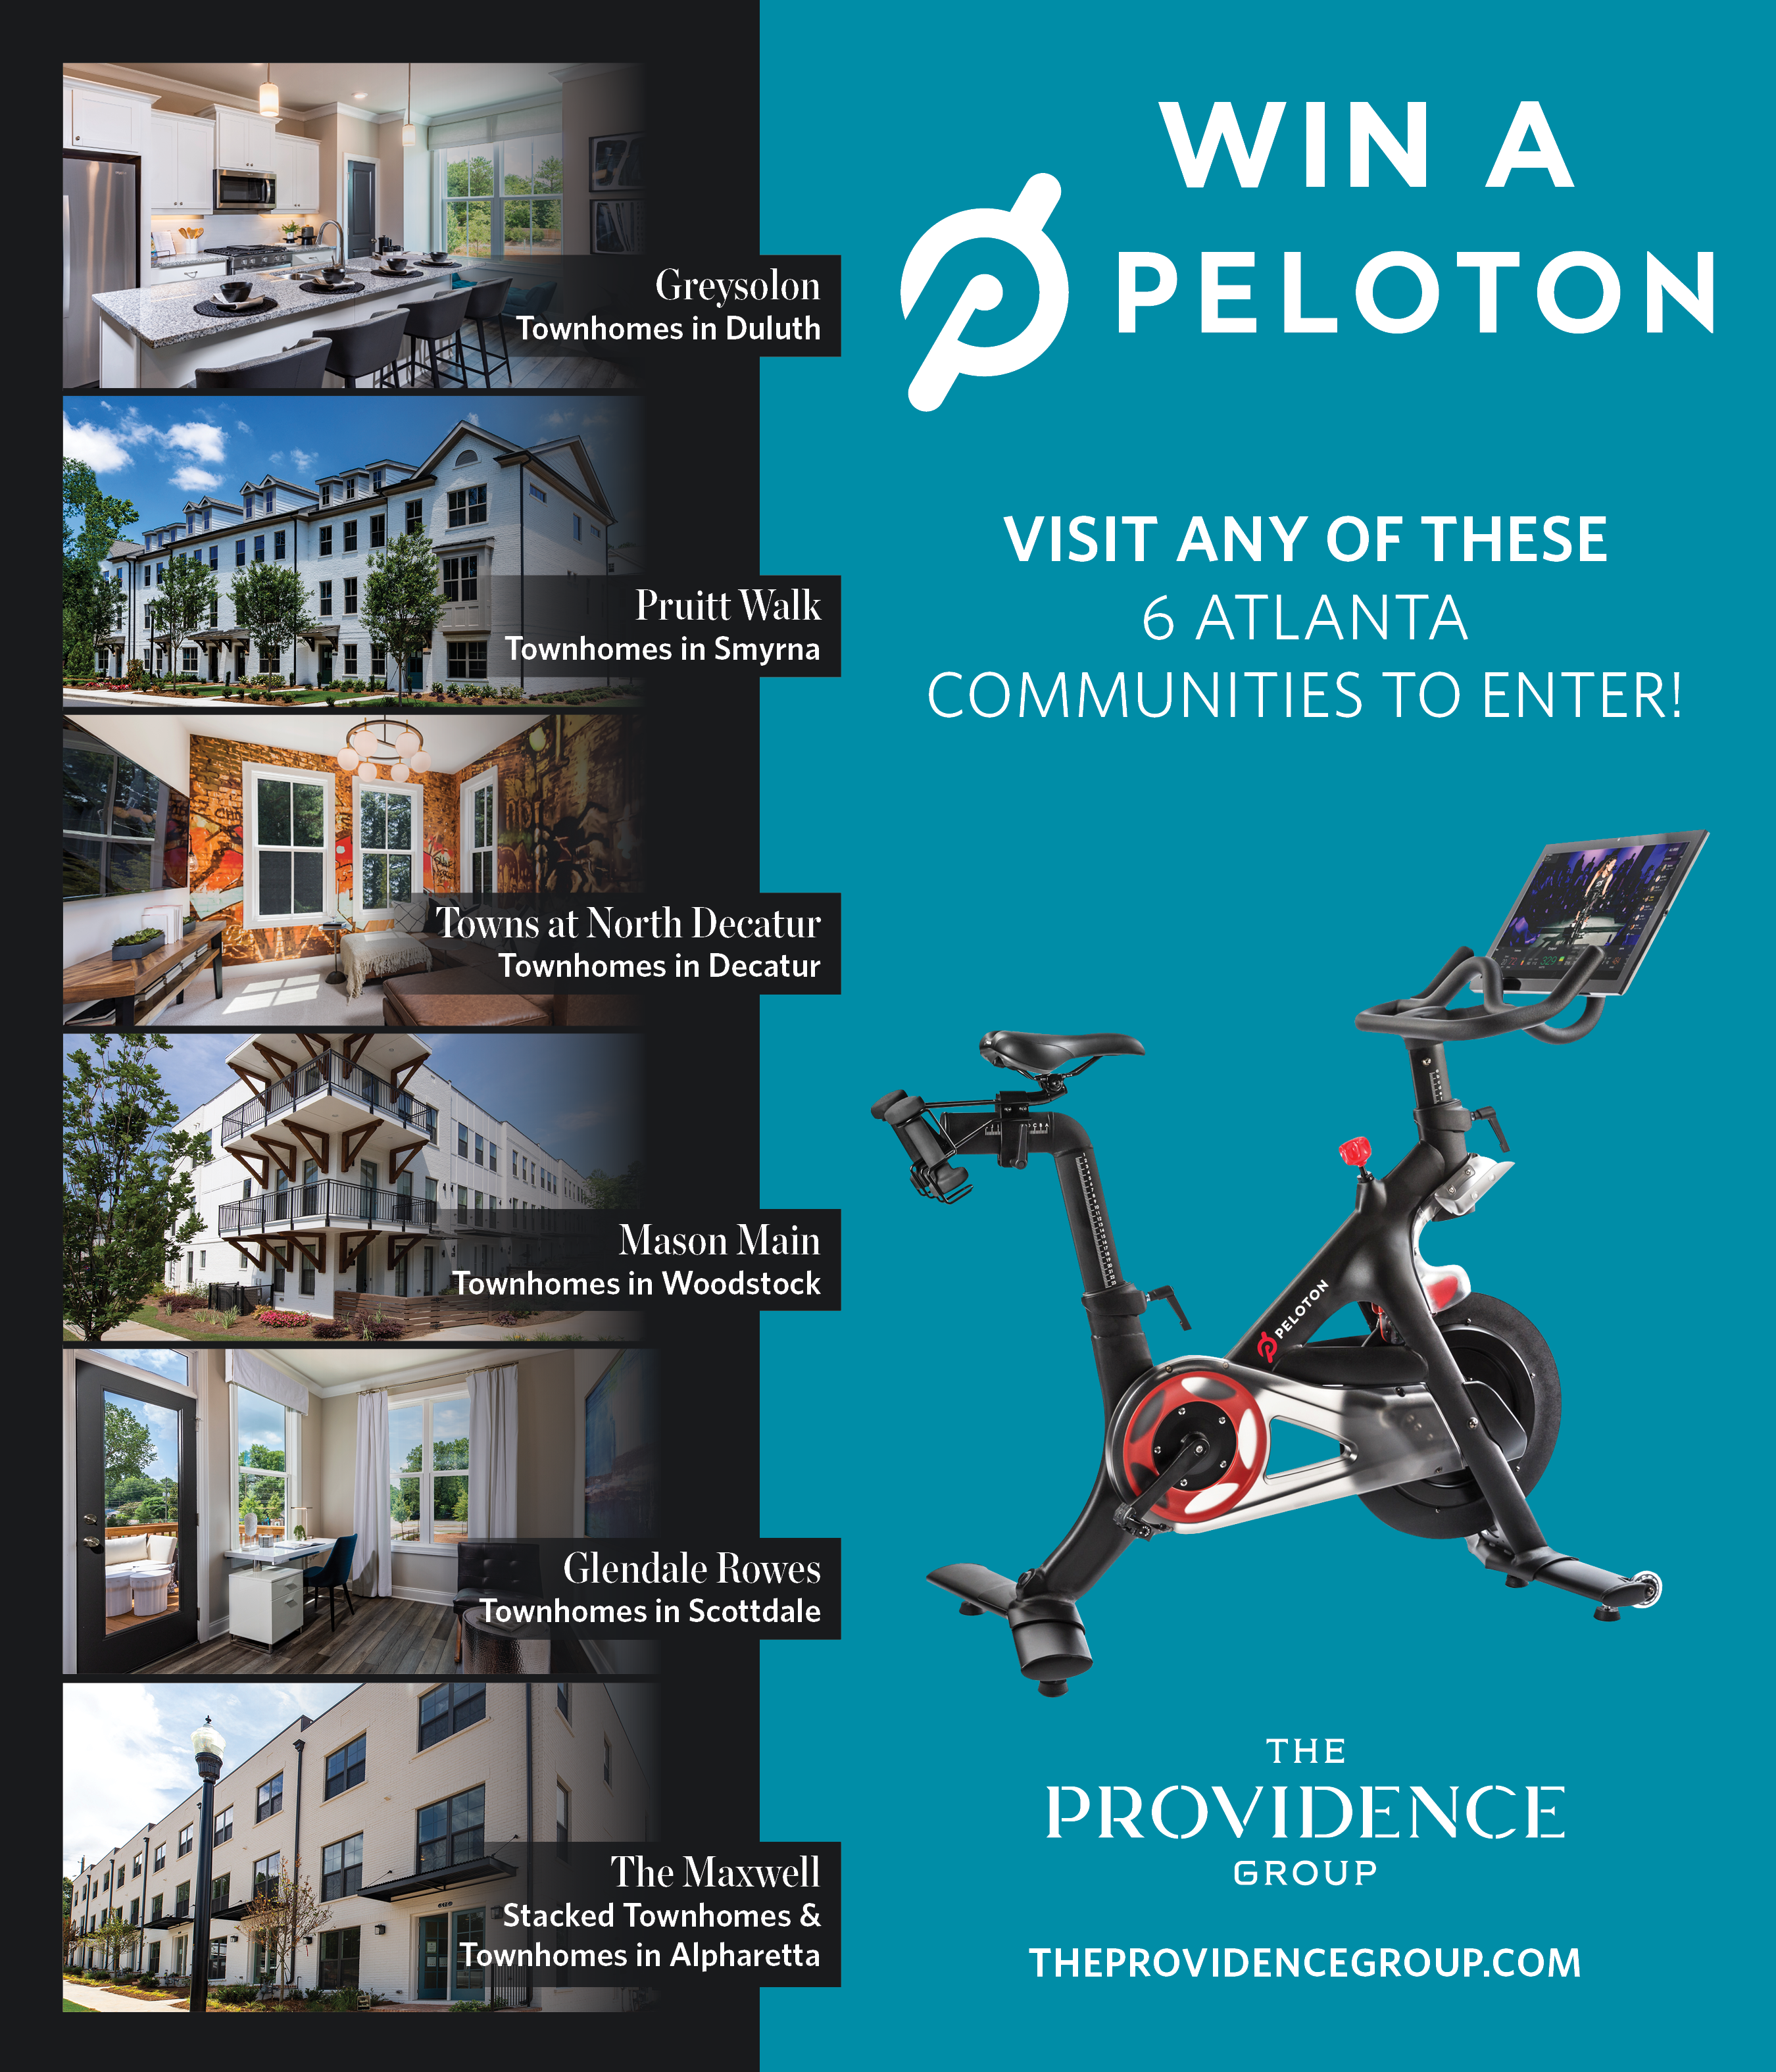 Providence Group Announces Peloton Giveaway at Select Communities